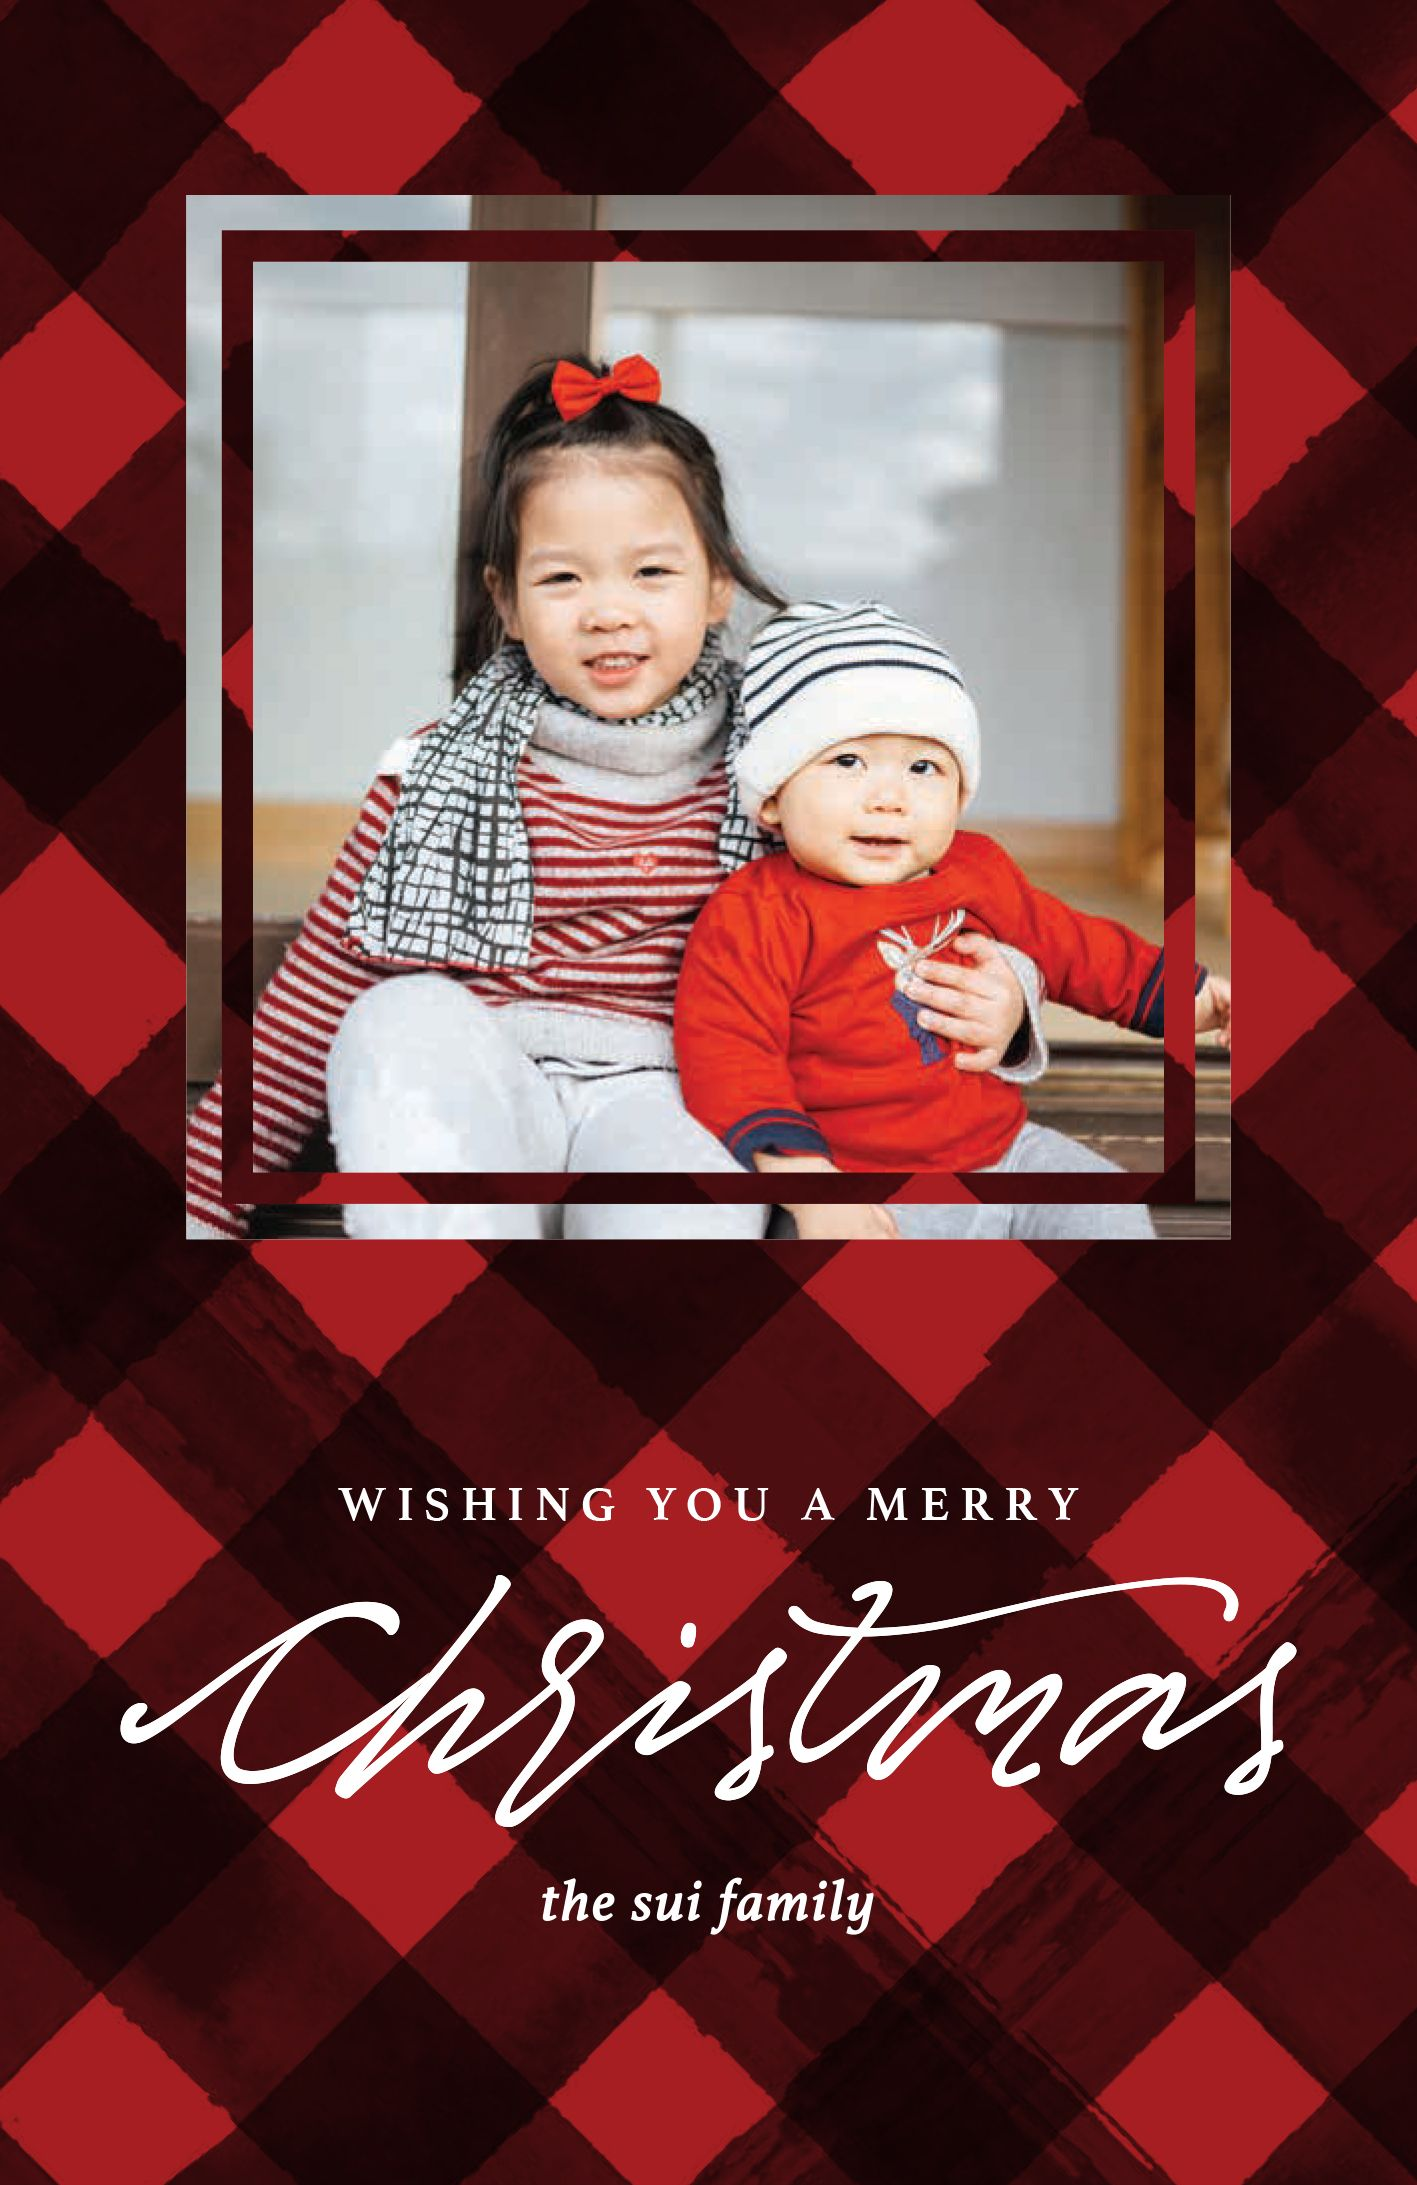 Pin By Vistaprint On Plaid Christmas Card Ideas Holiday Cards